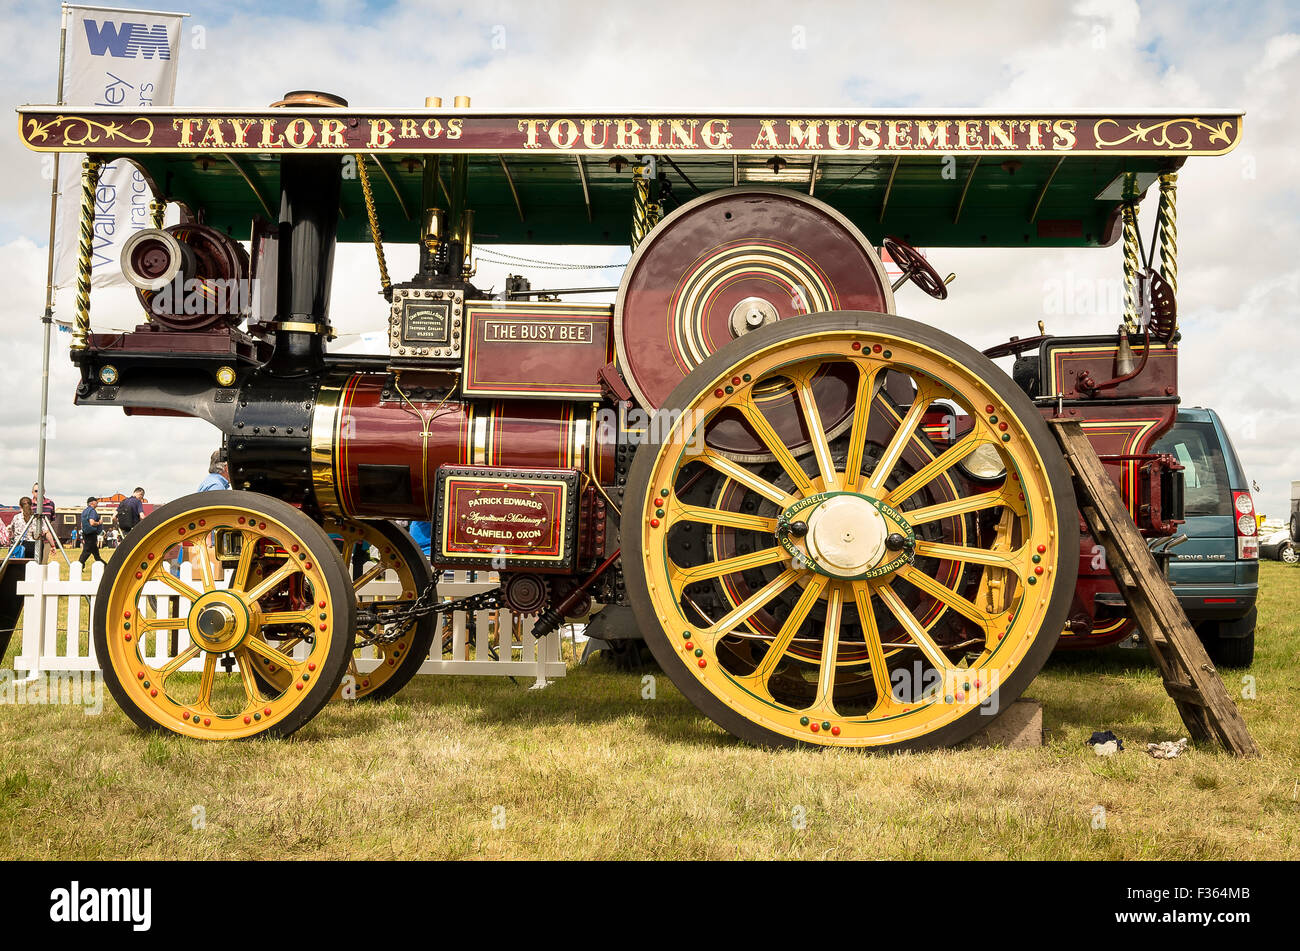 Restored Burrell Showman's engine older than 100 years in uk - Stock Image